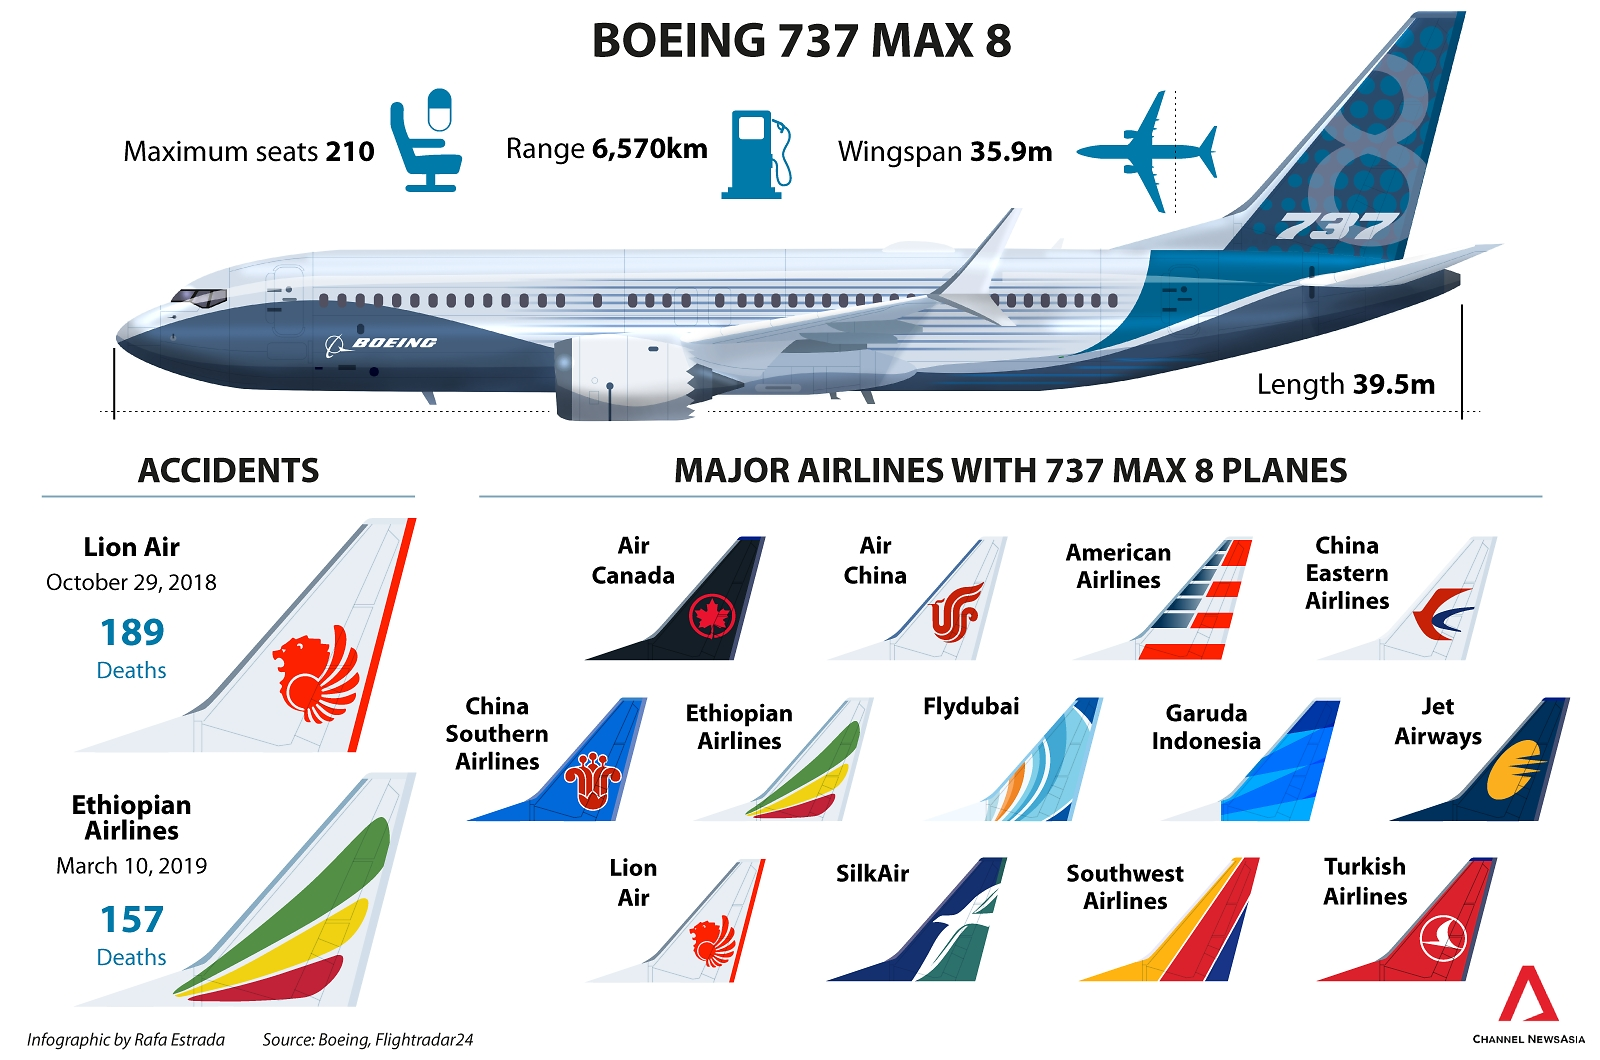 which company makes 737 max series of aircraft